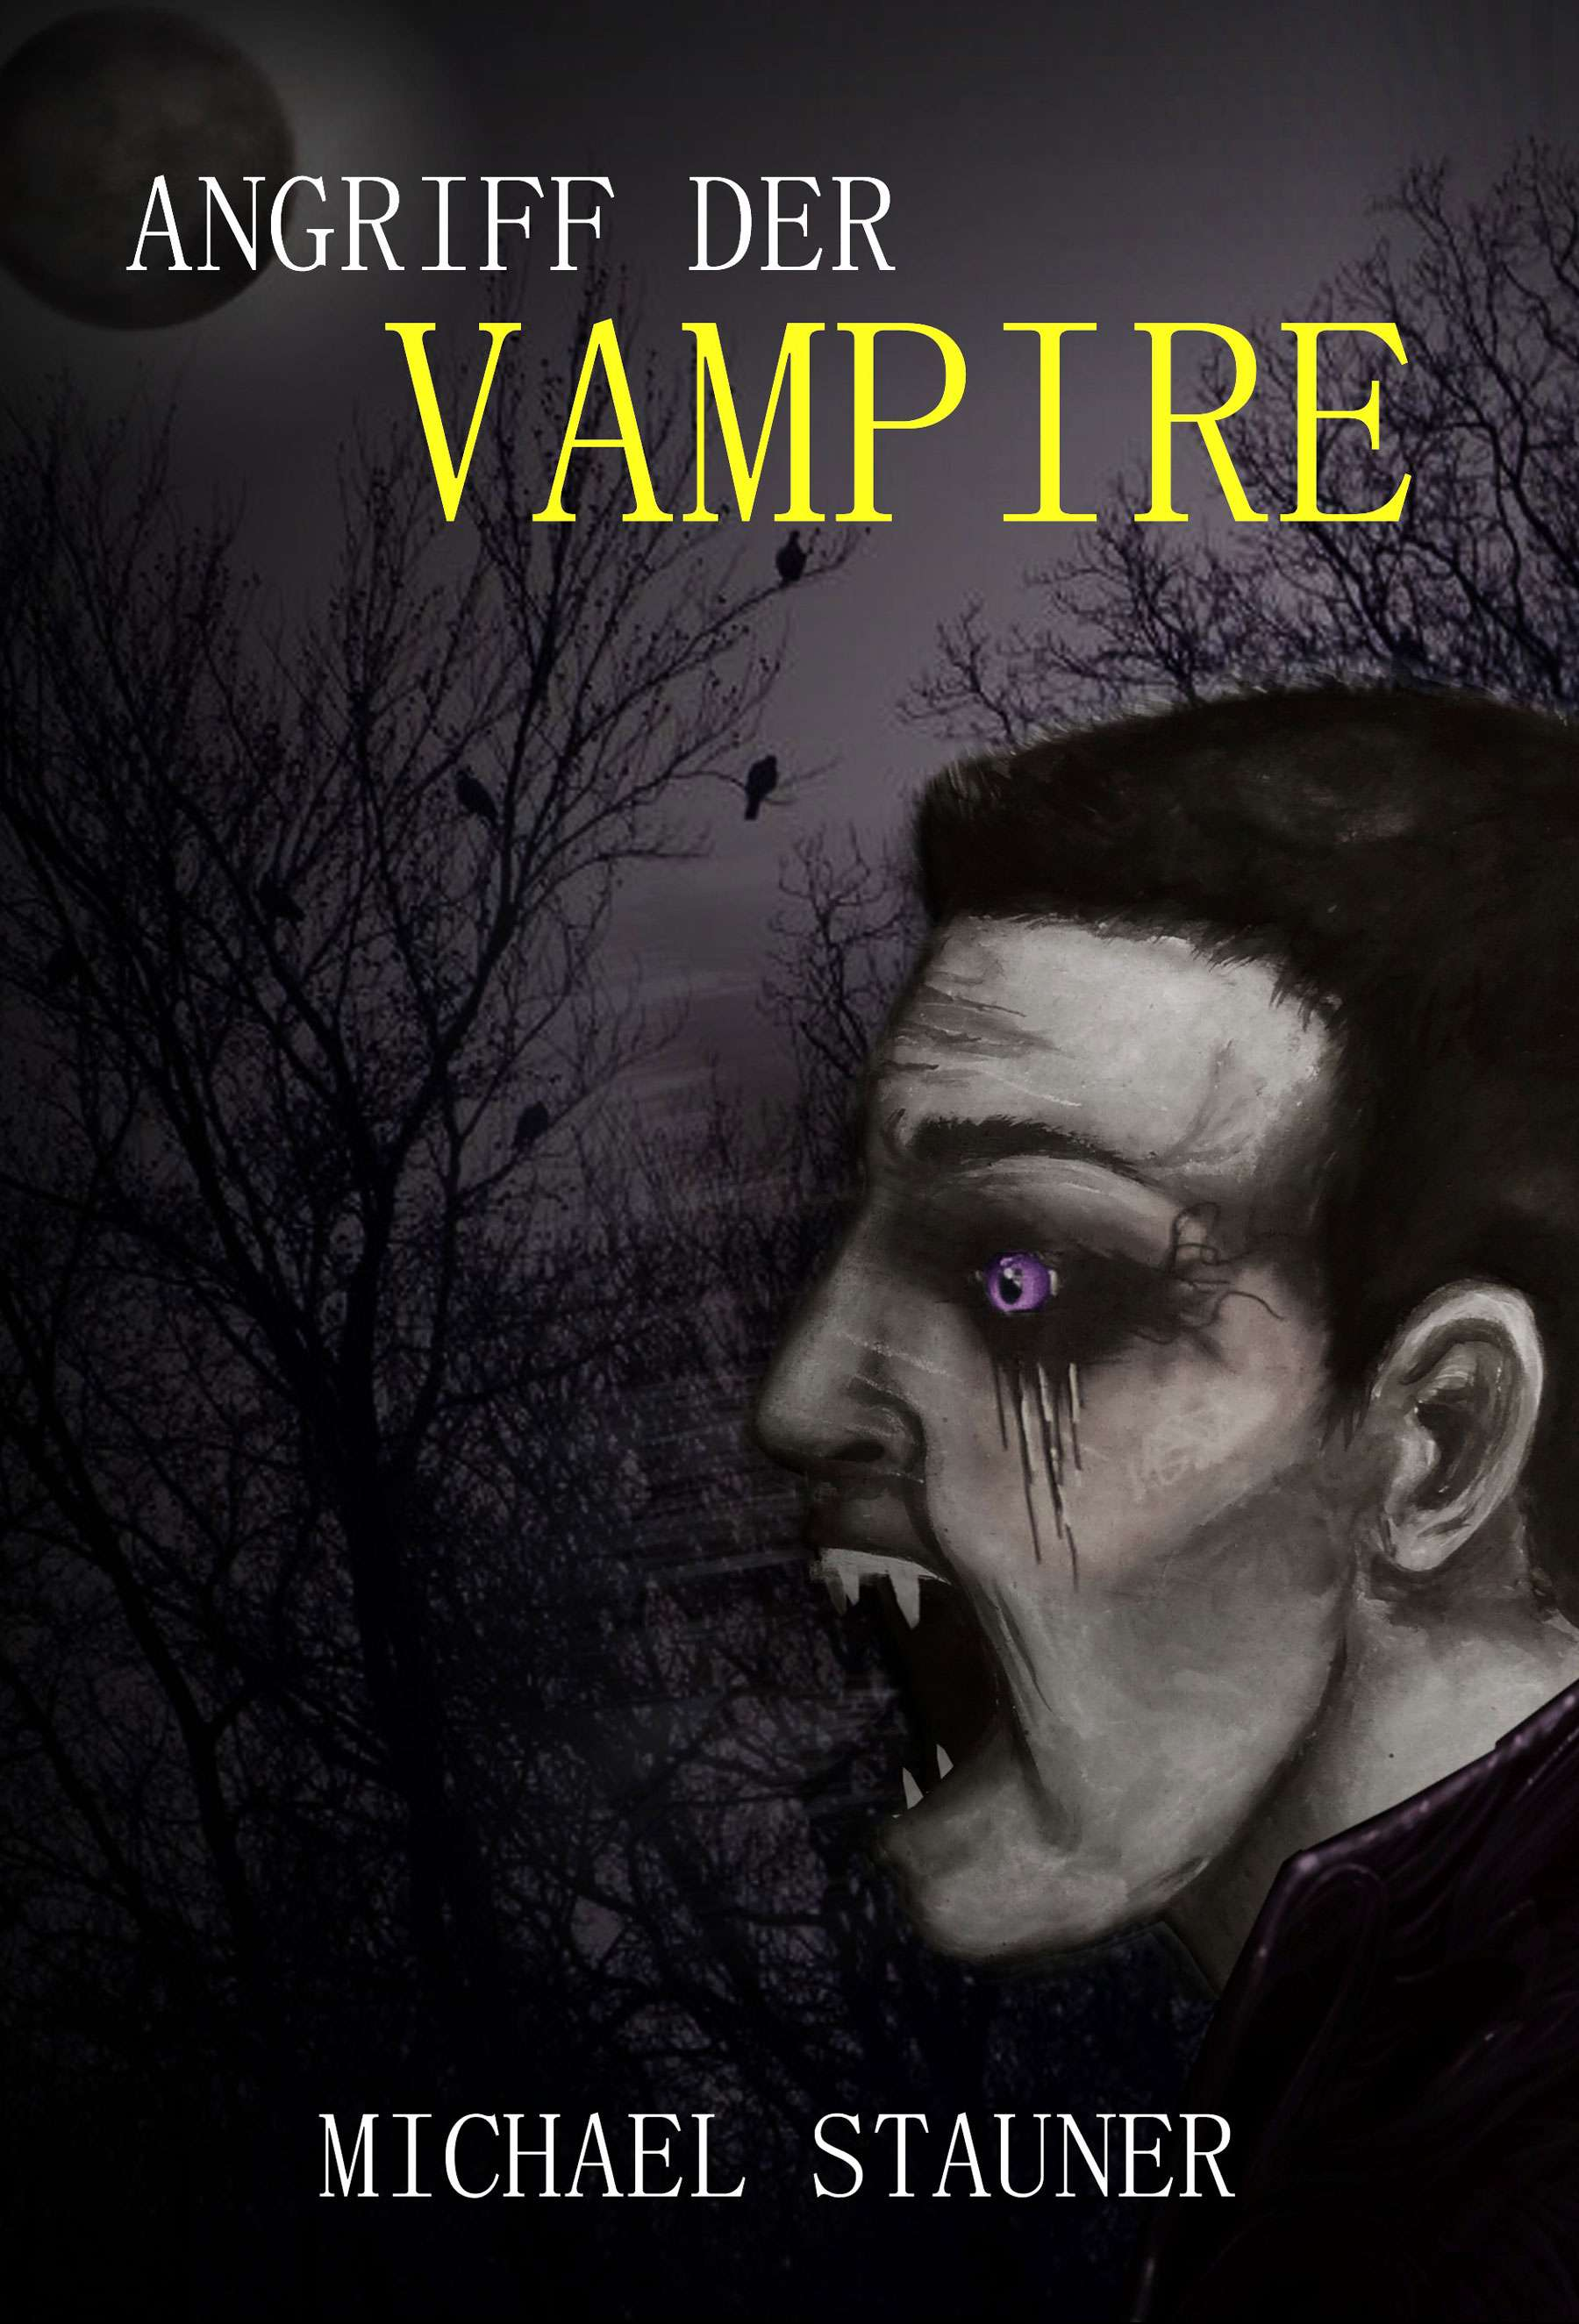 Michael Stauner Angriff der Vampire Book Cover